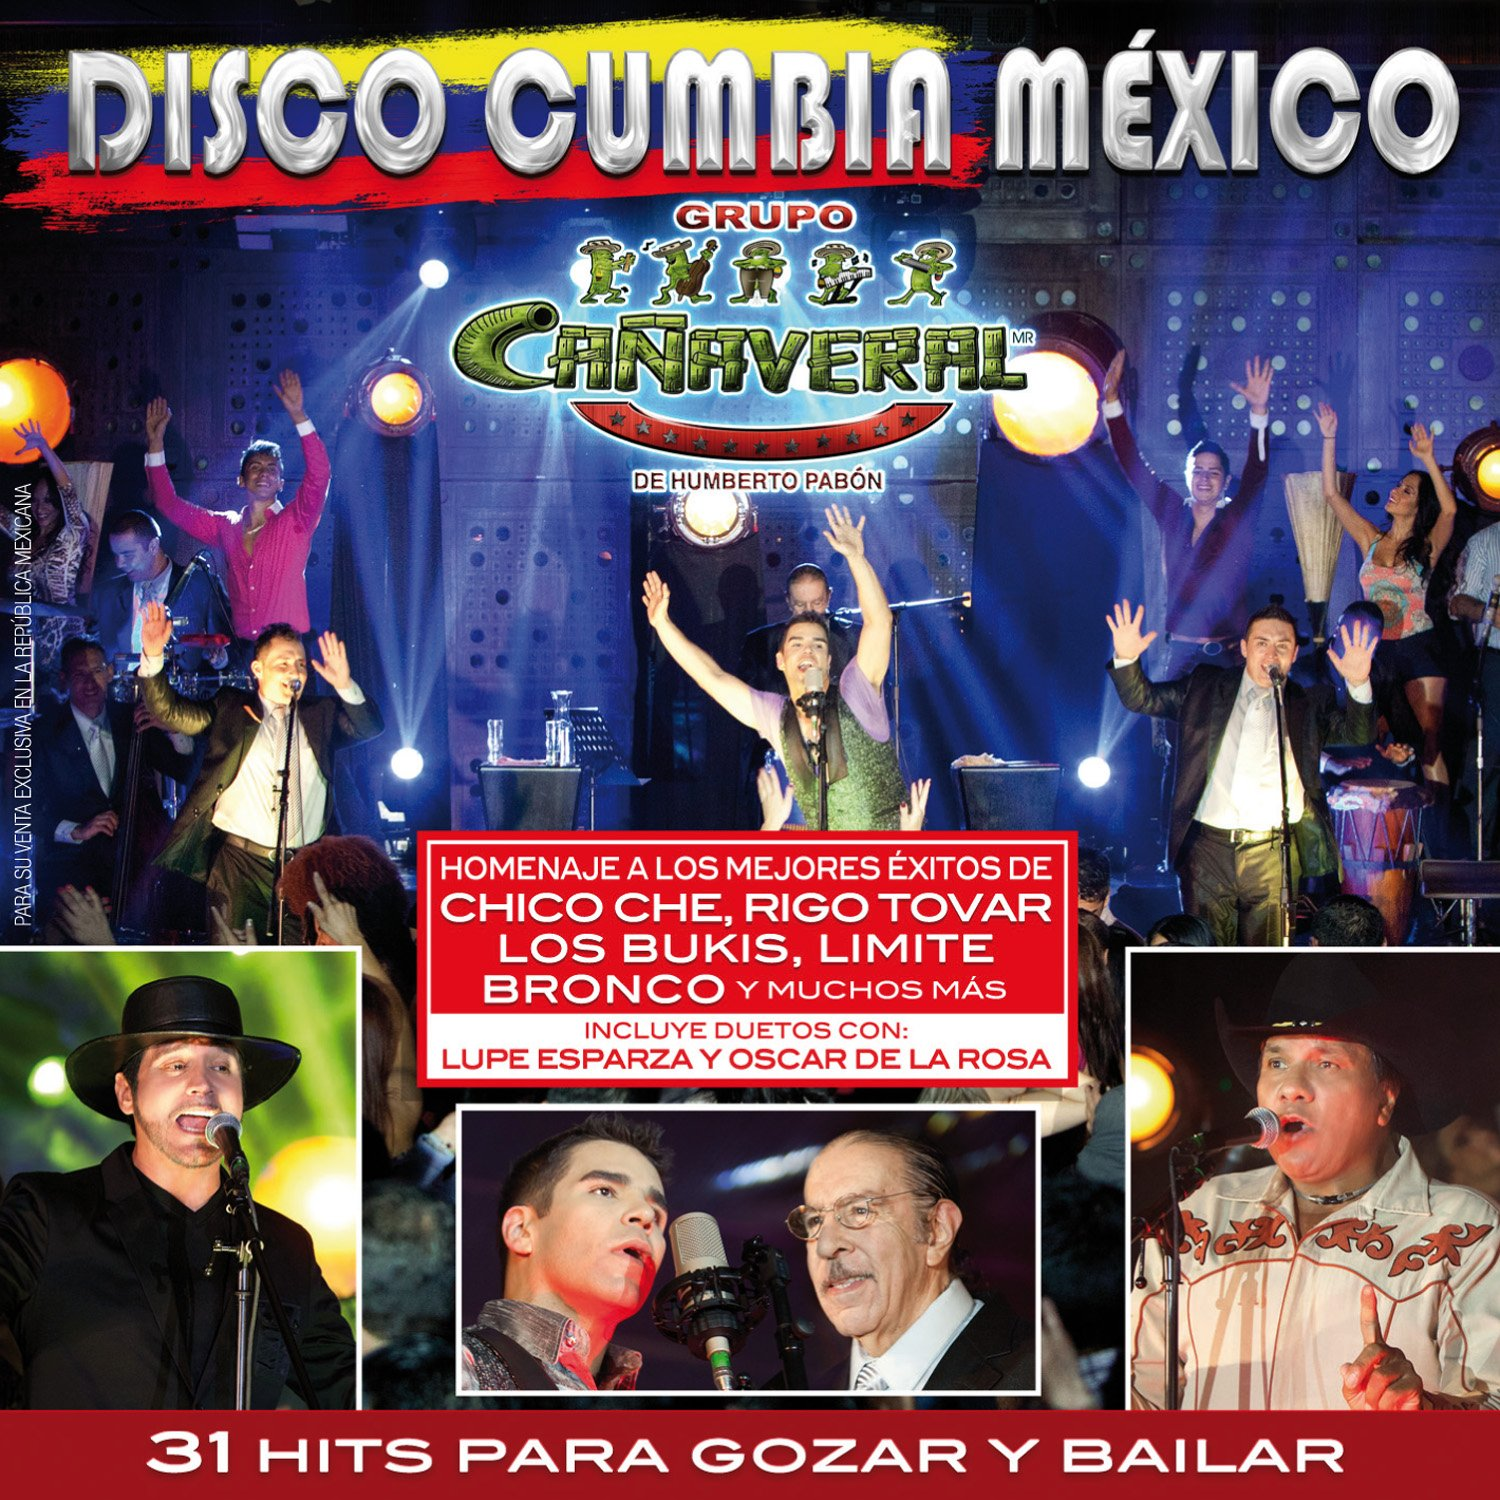 Disco Popular Finally resale start brand in the world Cumbia Mexico